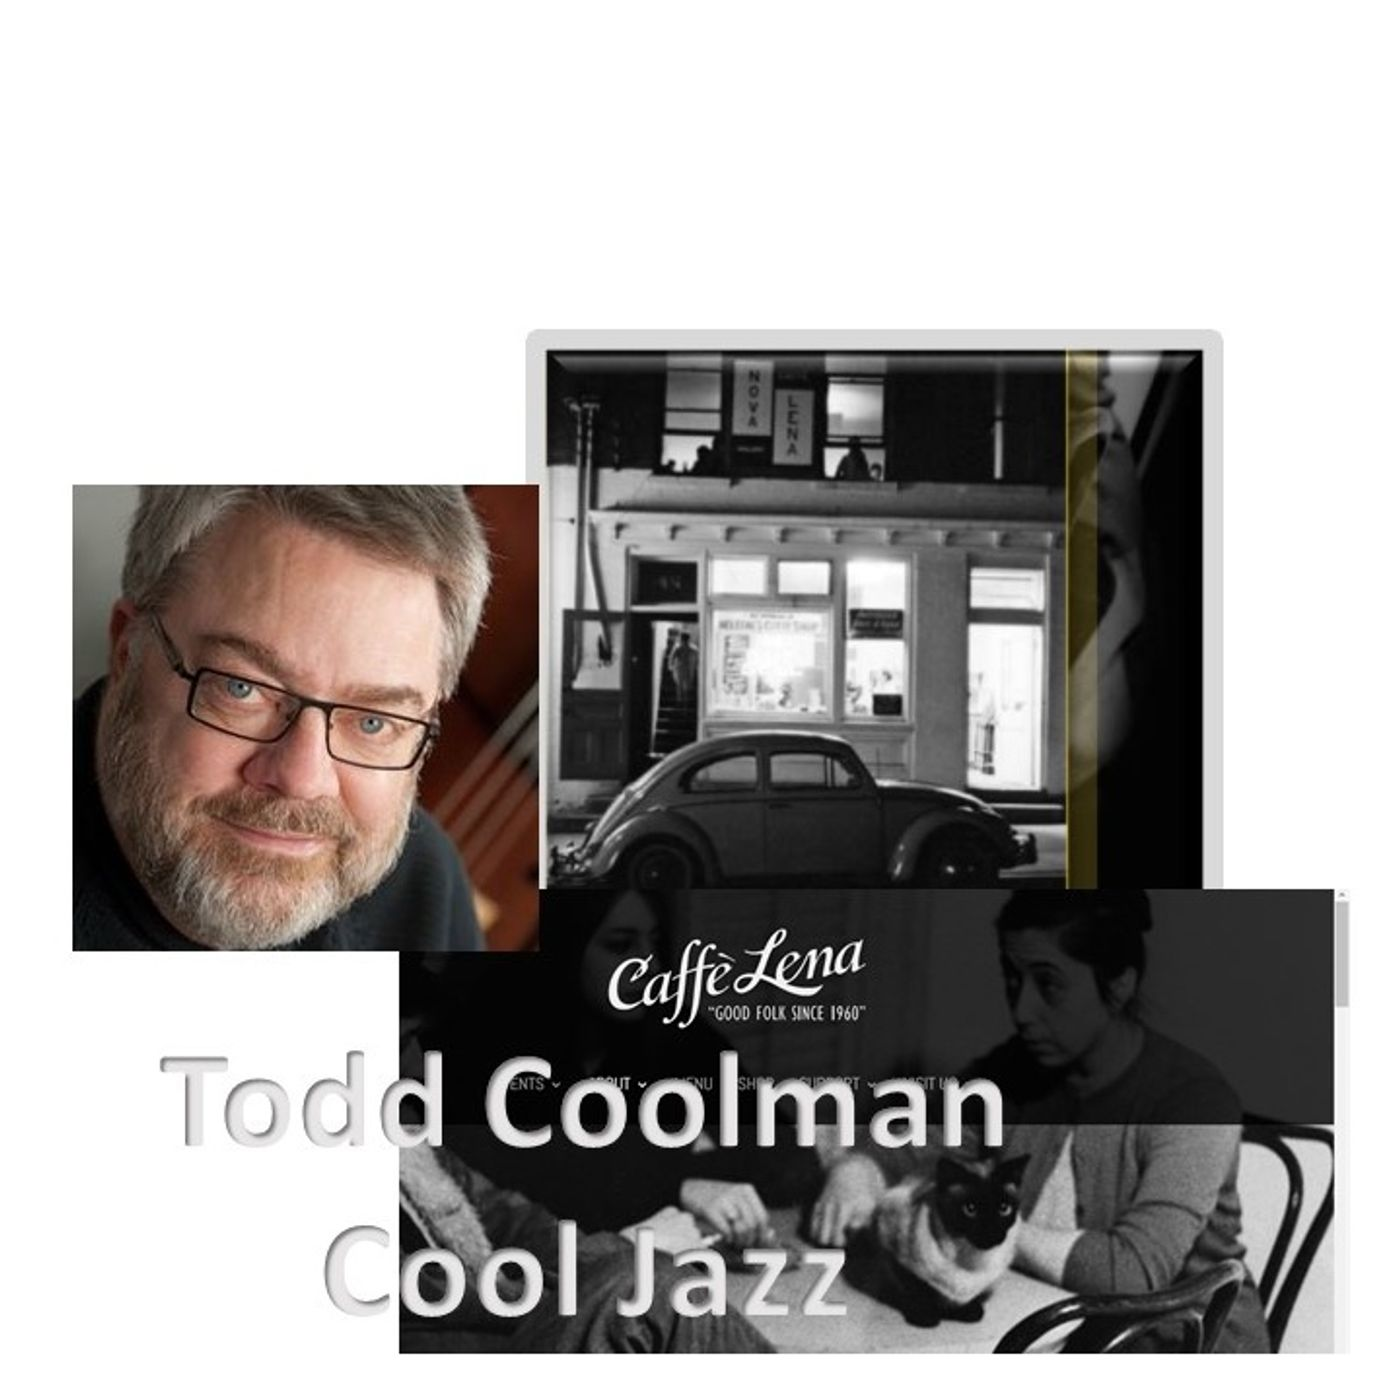 todd-coolman-jazz-6-25-19